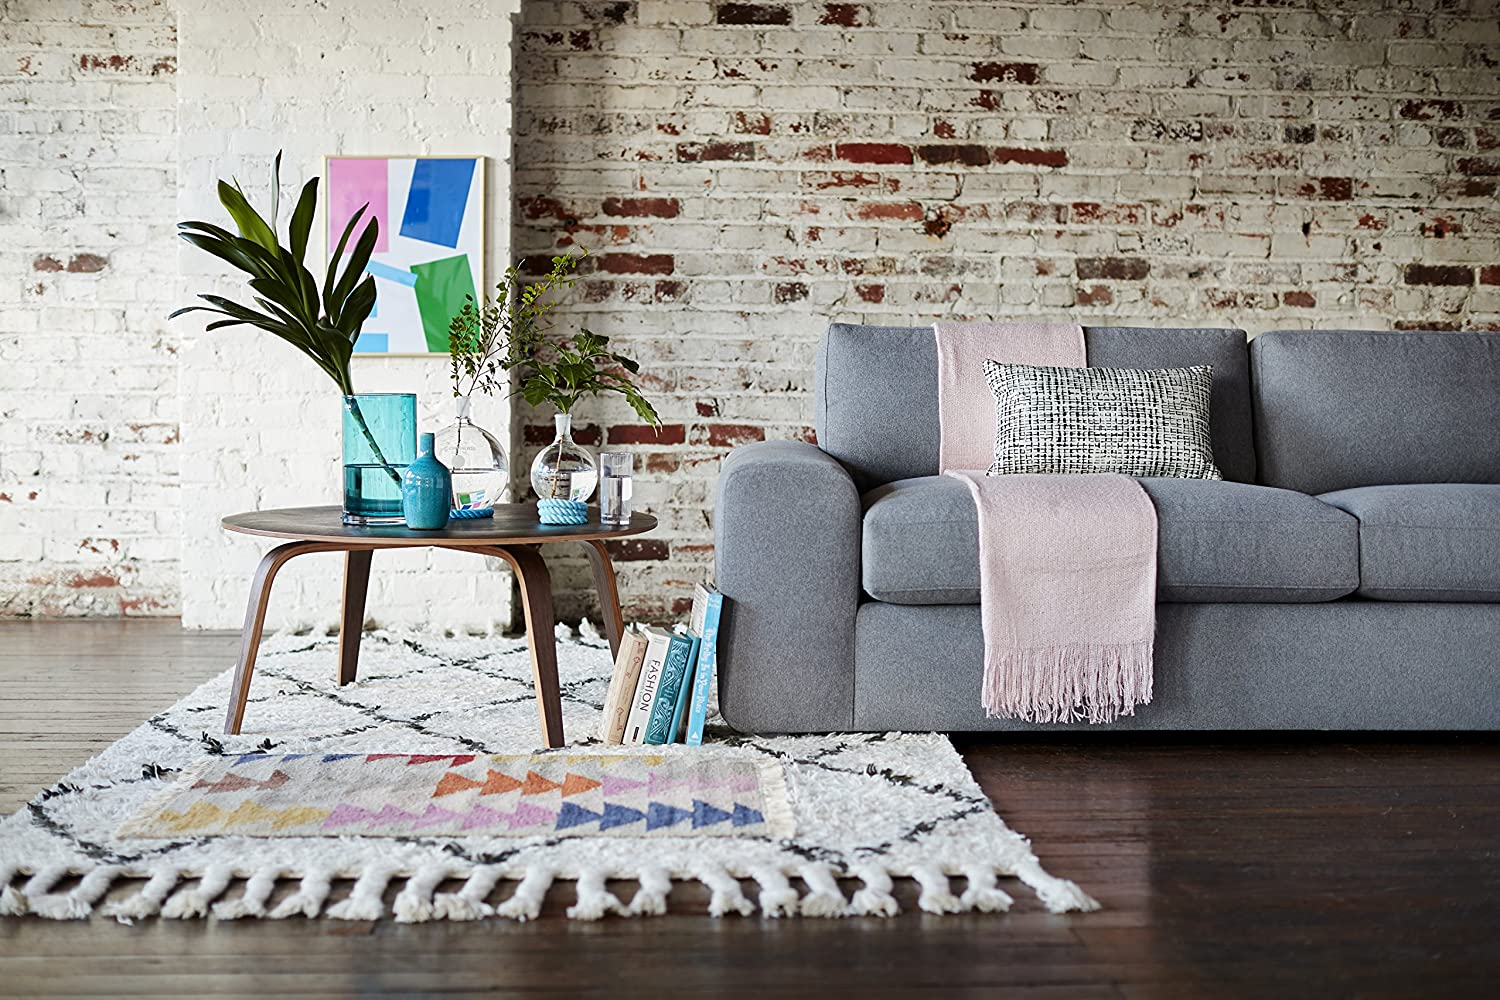 Top 5 Living Room Rugs: Buying Guide & Reviews 20